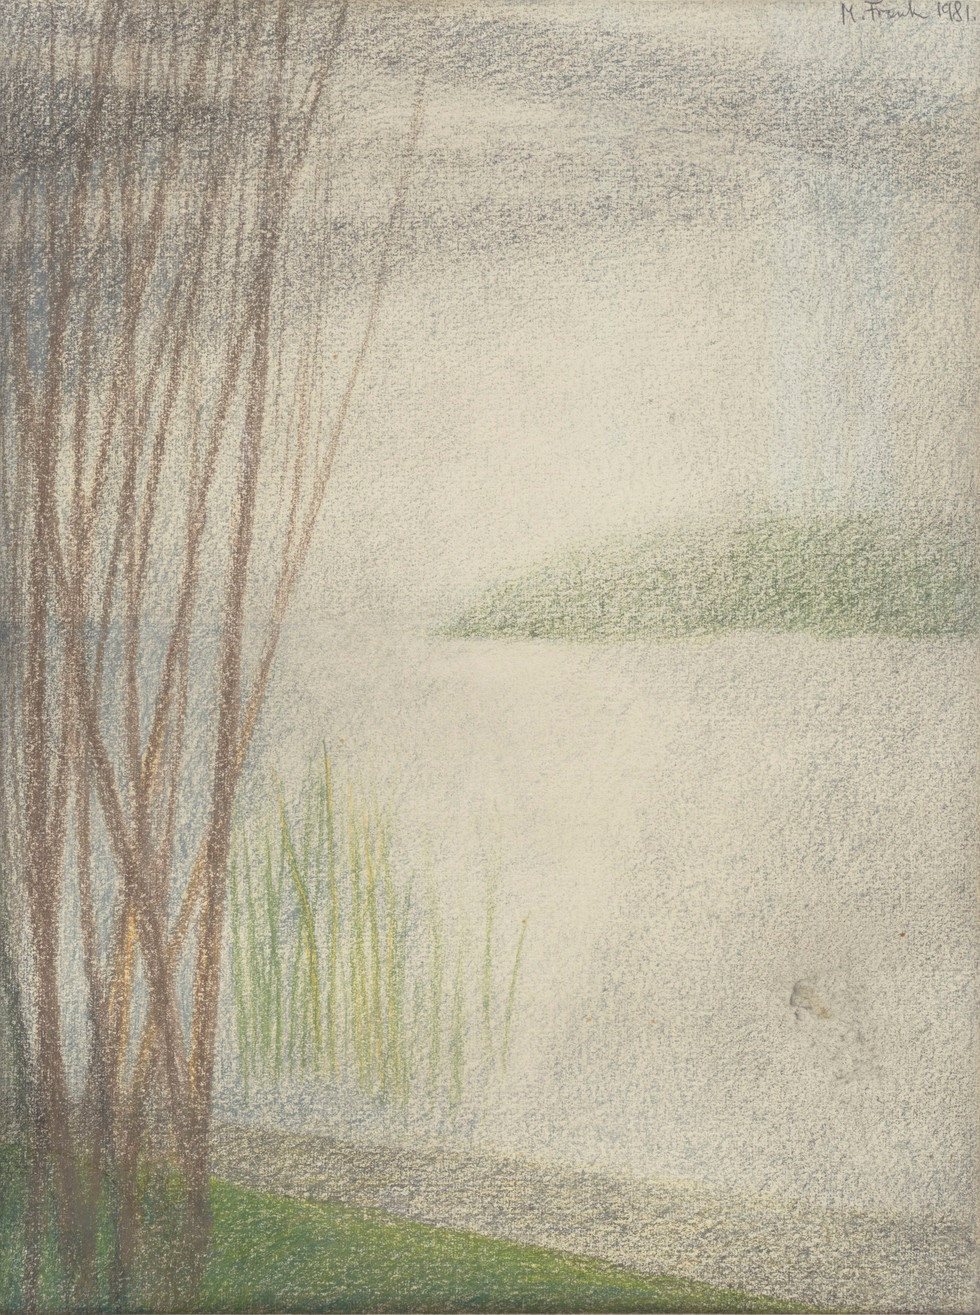 Untitled - grass in water and trees on shore